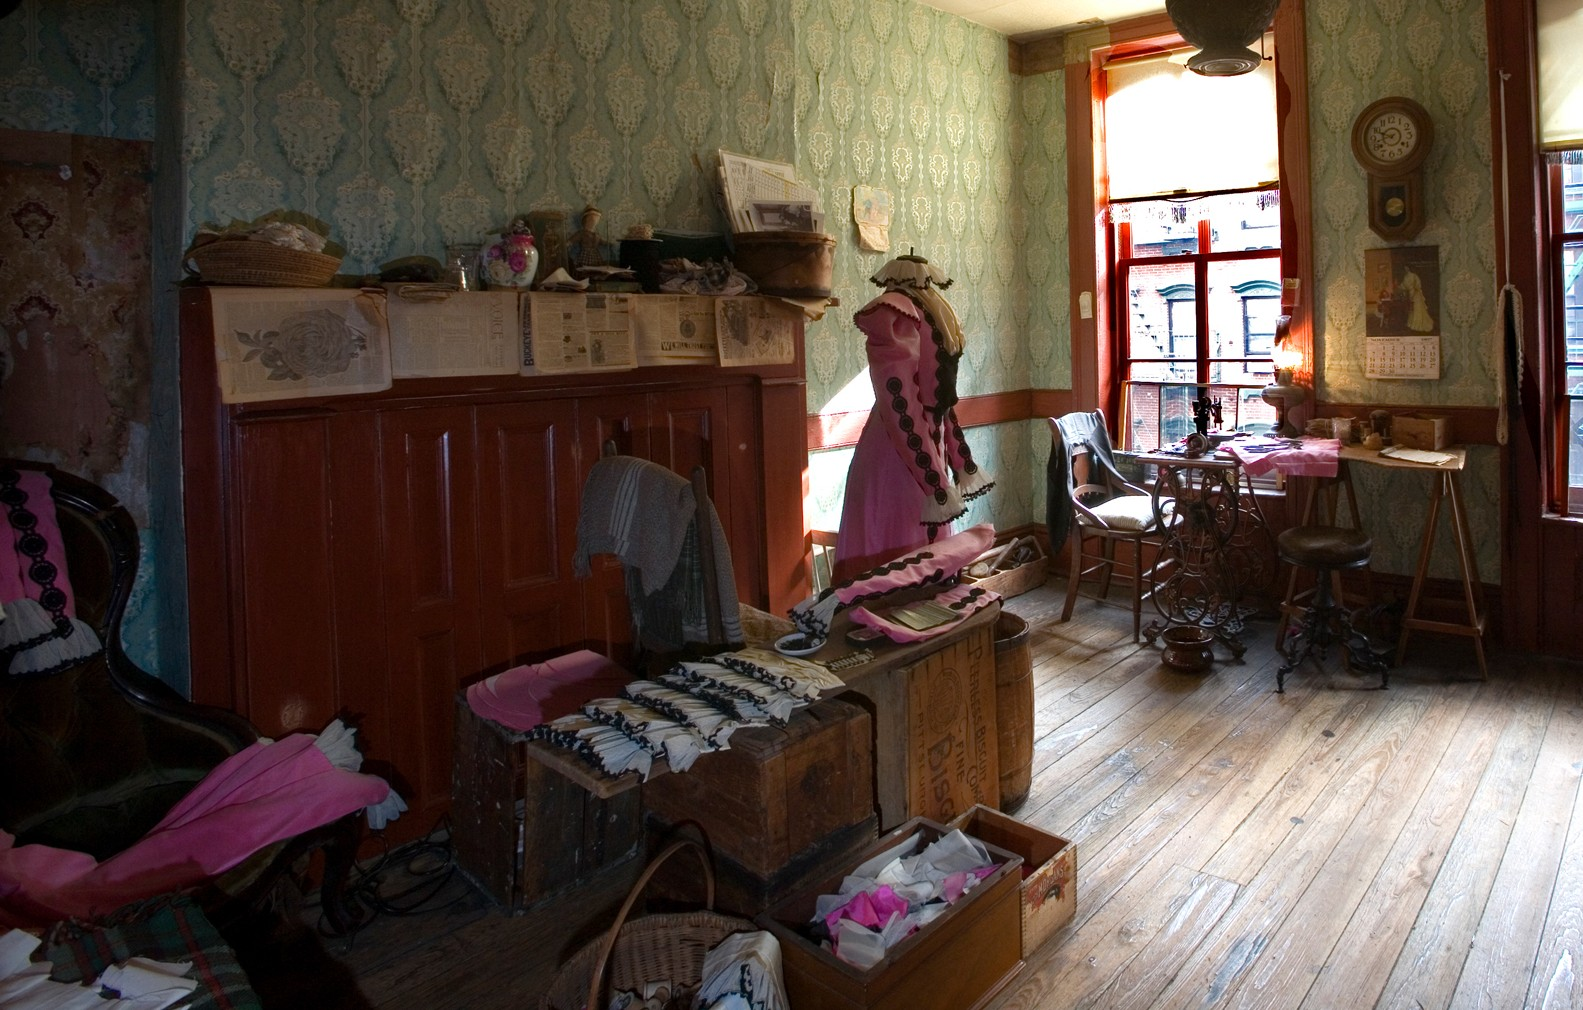 The Levine parlor showing the materials and tools of their garment shop